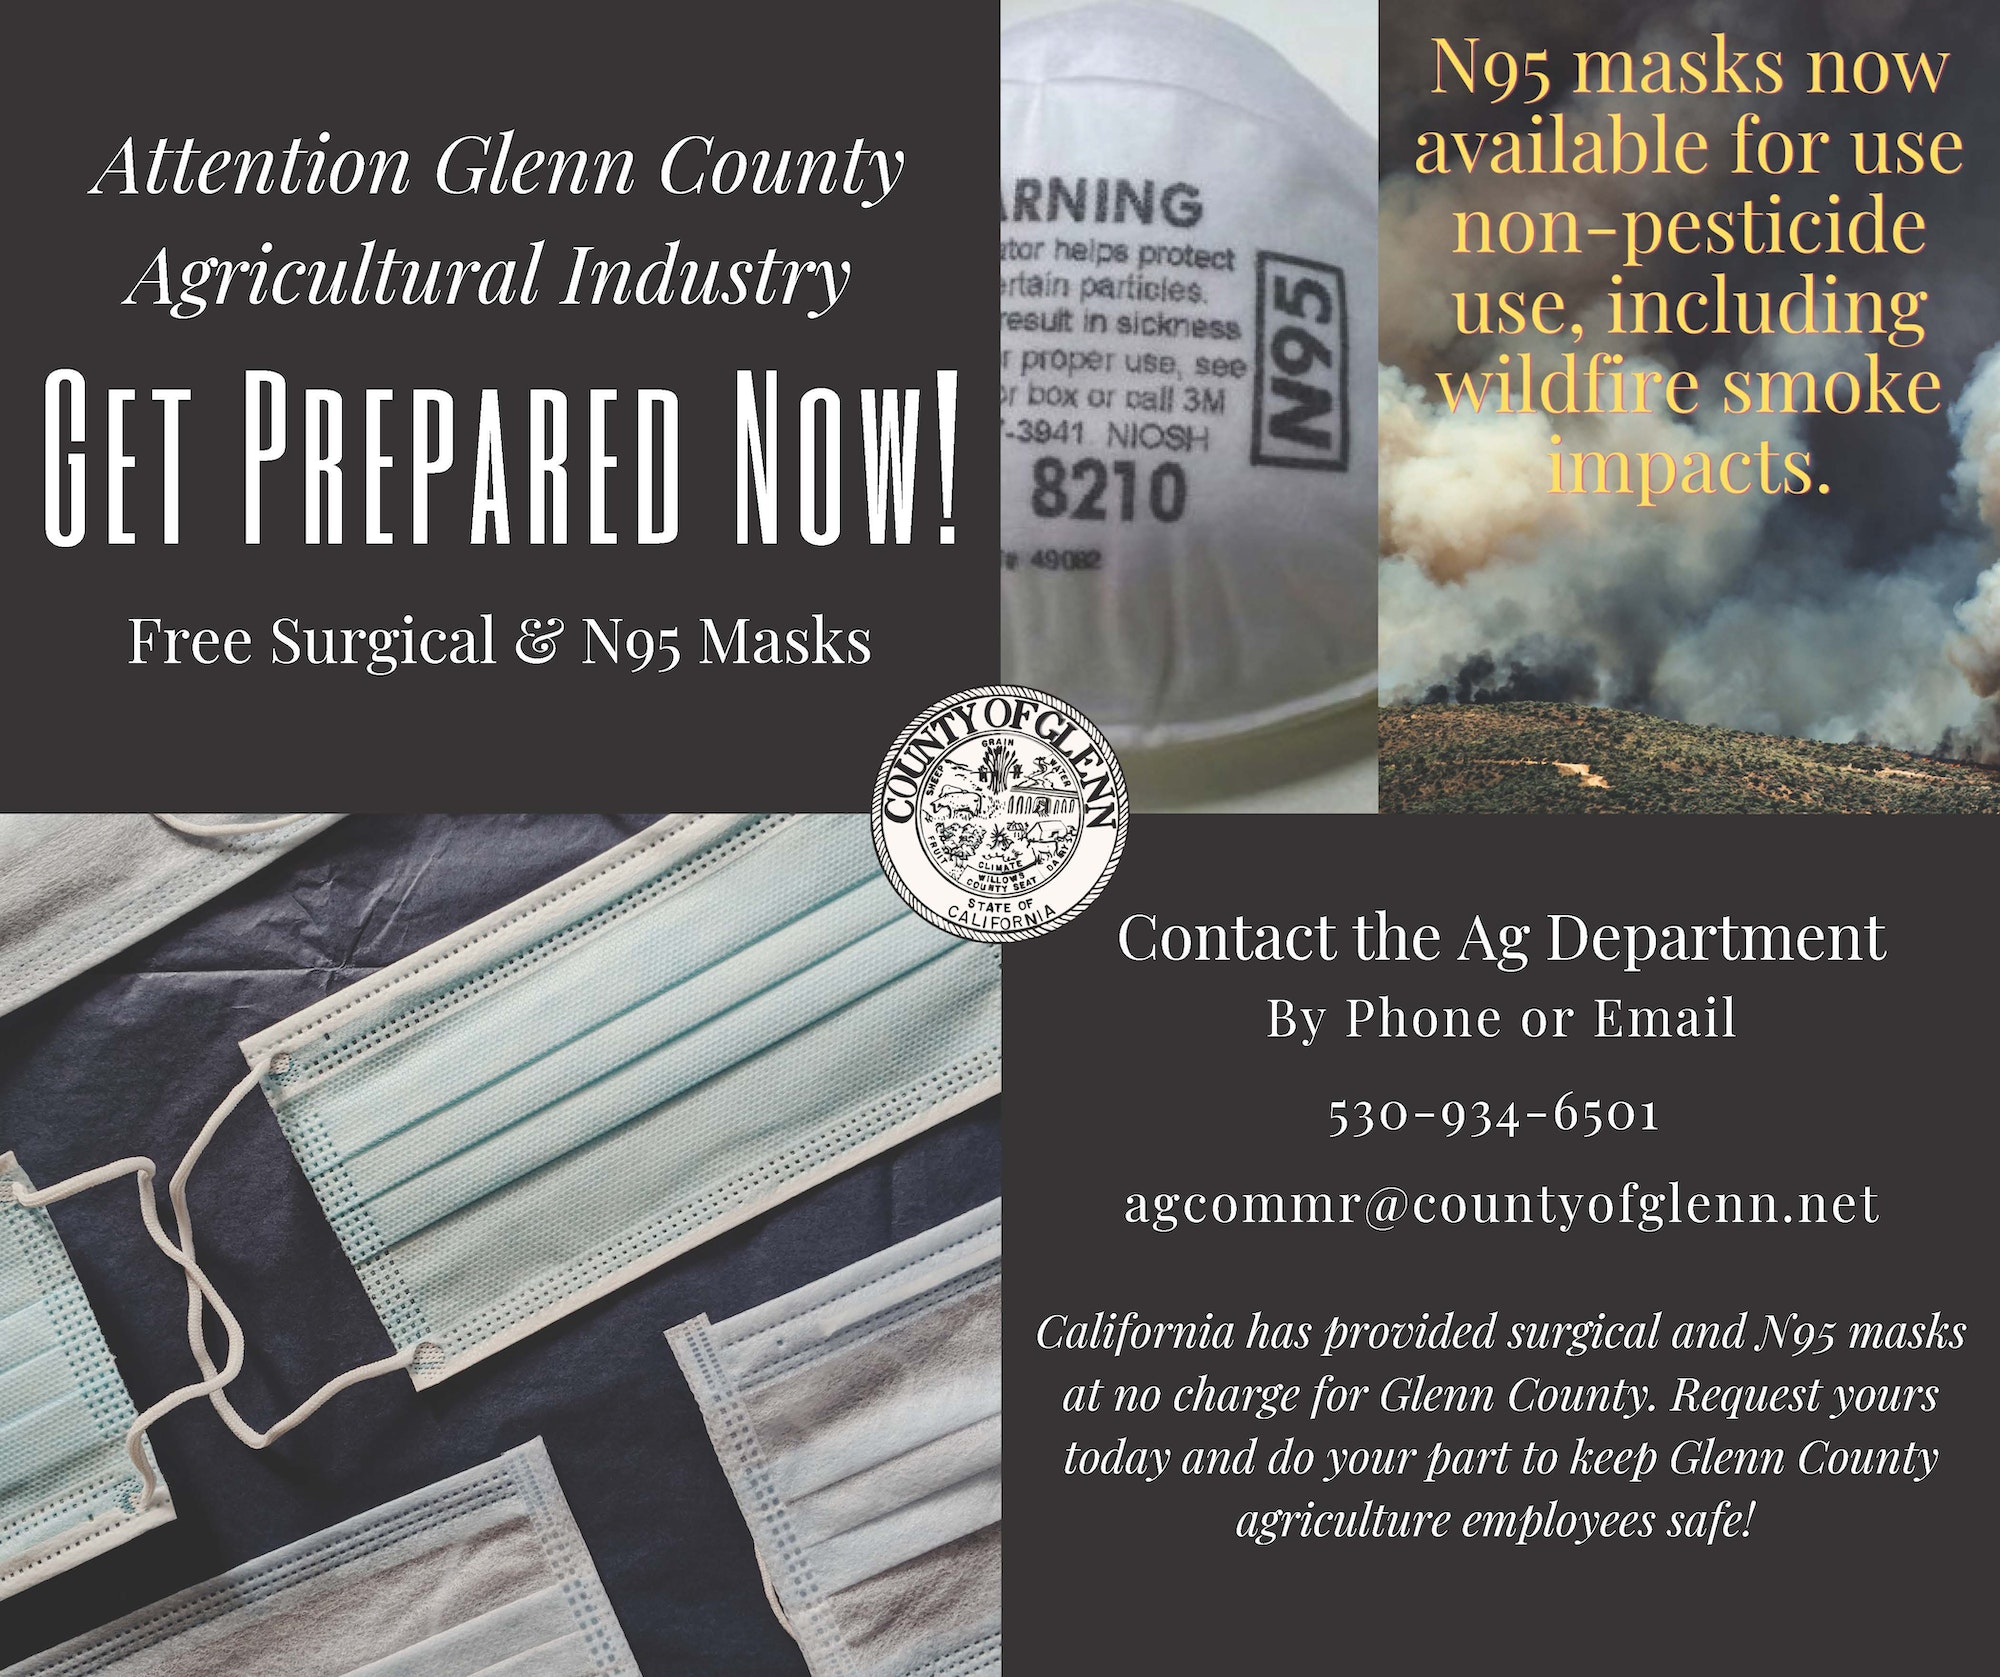 Contact Glenn County Ag Department for free surgical or N95 masks for agricultural employees